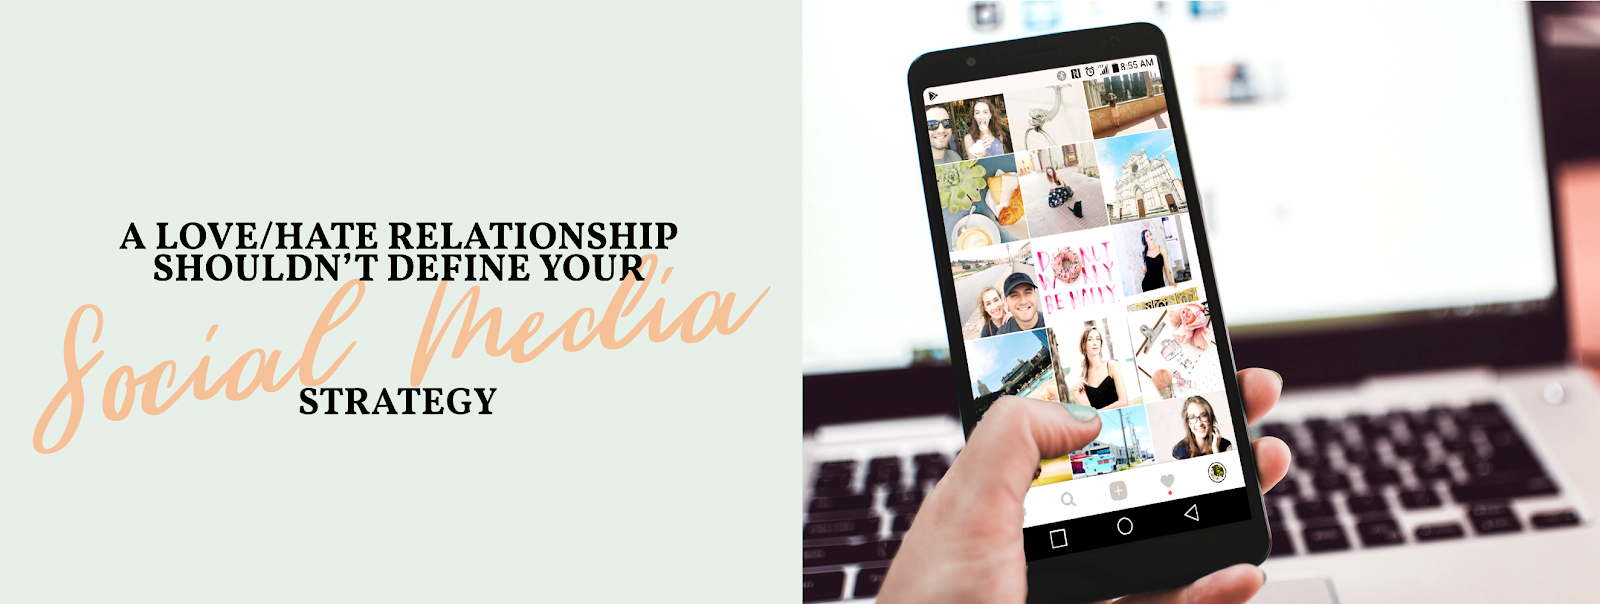 A Love/Hate relationship shouldn't define your social media strategy